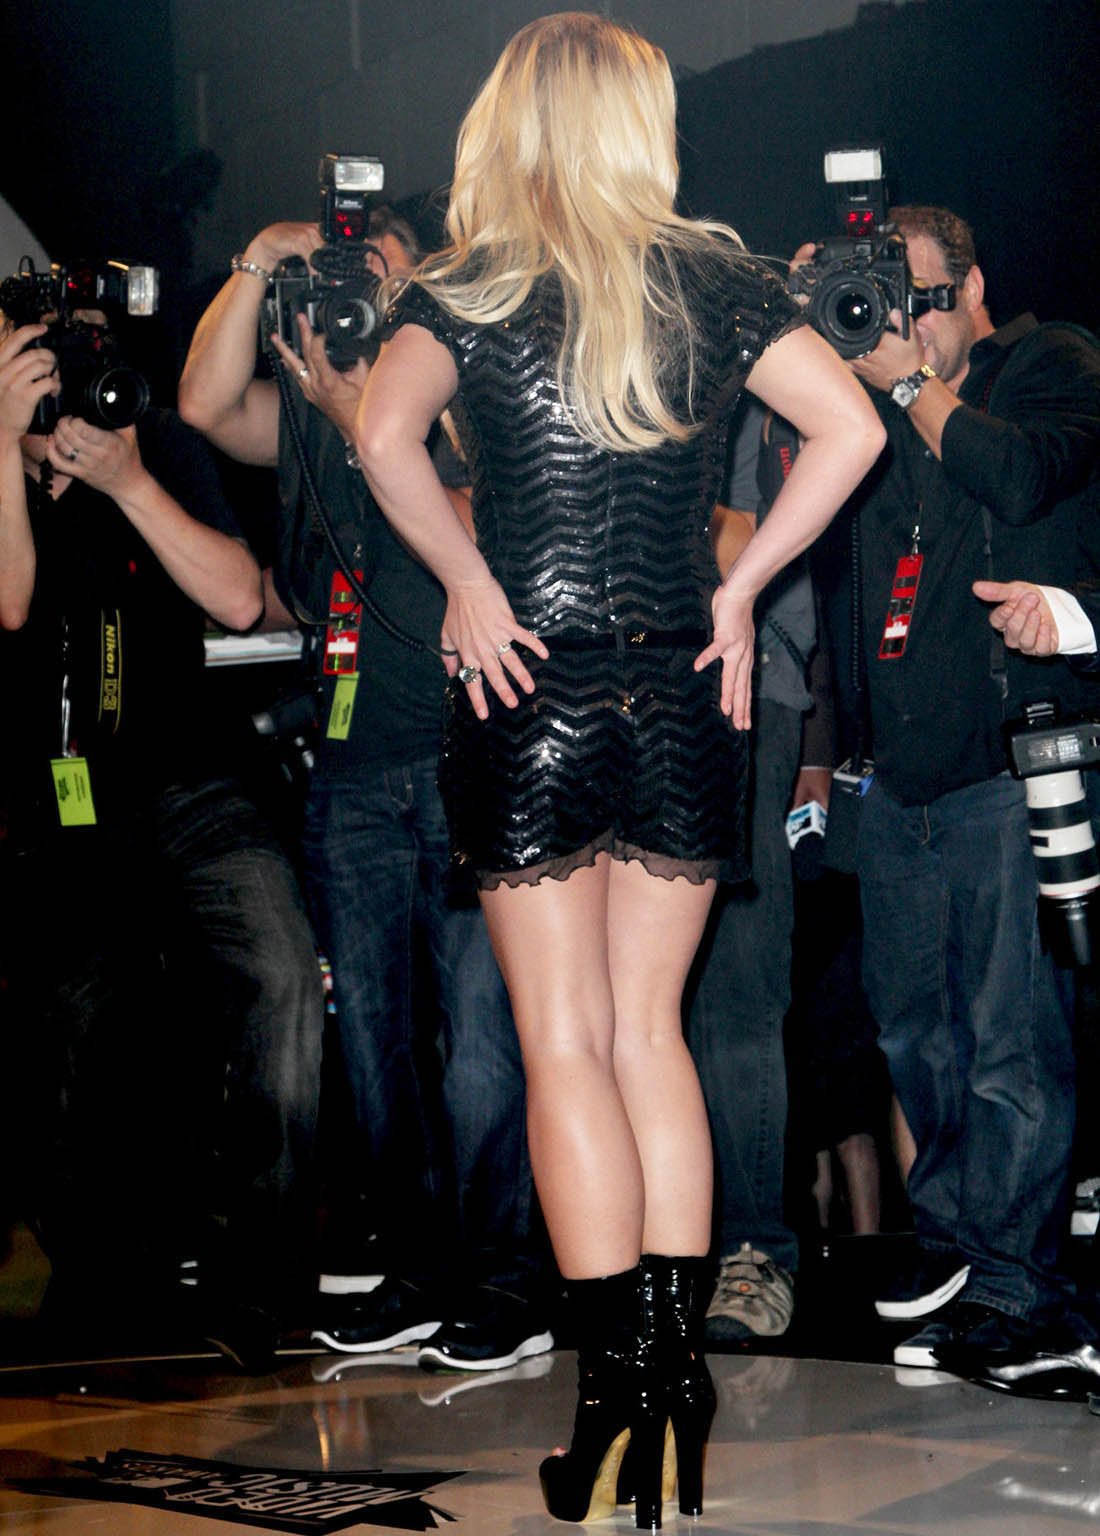 http://4.bp.blogspot.com/-DMTe2ywK7Jg/UO1d_WBxsyI/AAAAAAAAG7U/gKuaiQMB-YY/s1600/britney-spears-at-mtv-video-music-awards-2011-1.jpg